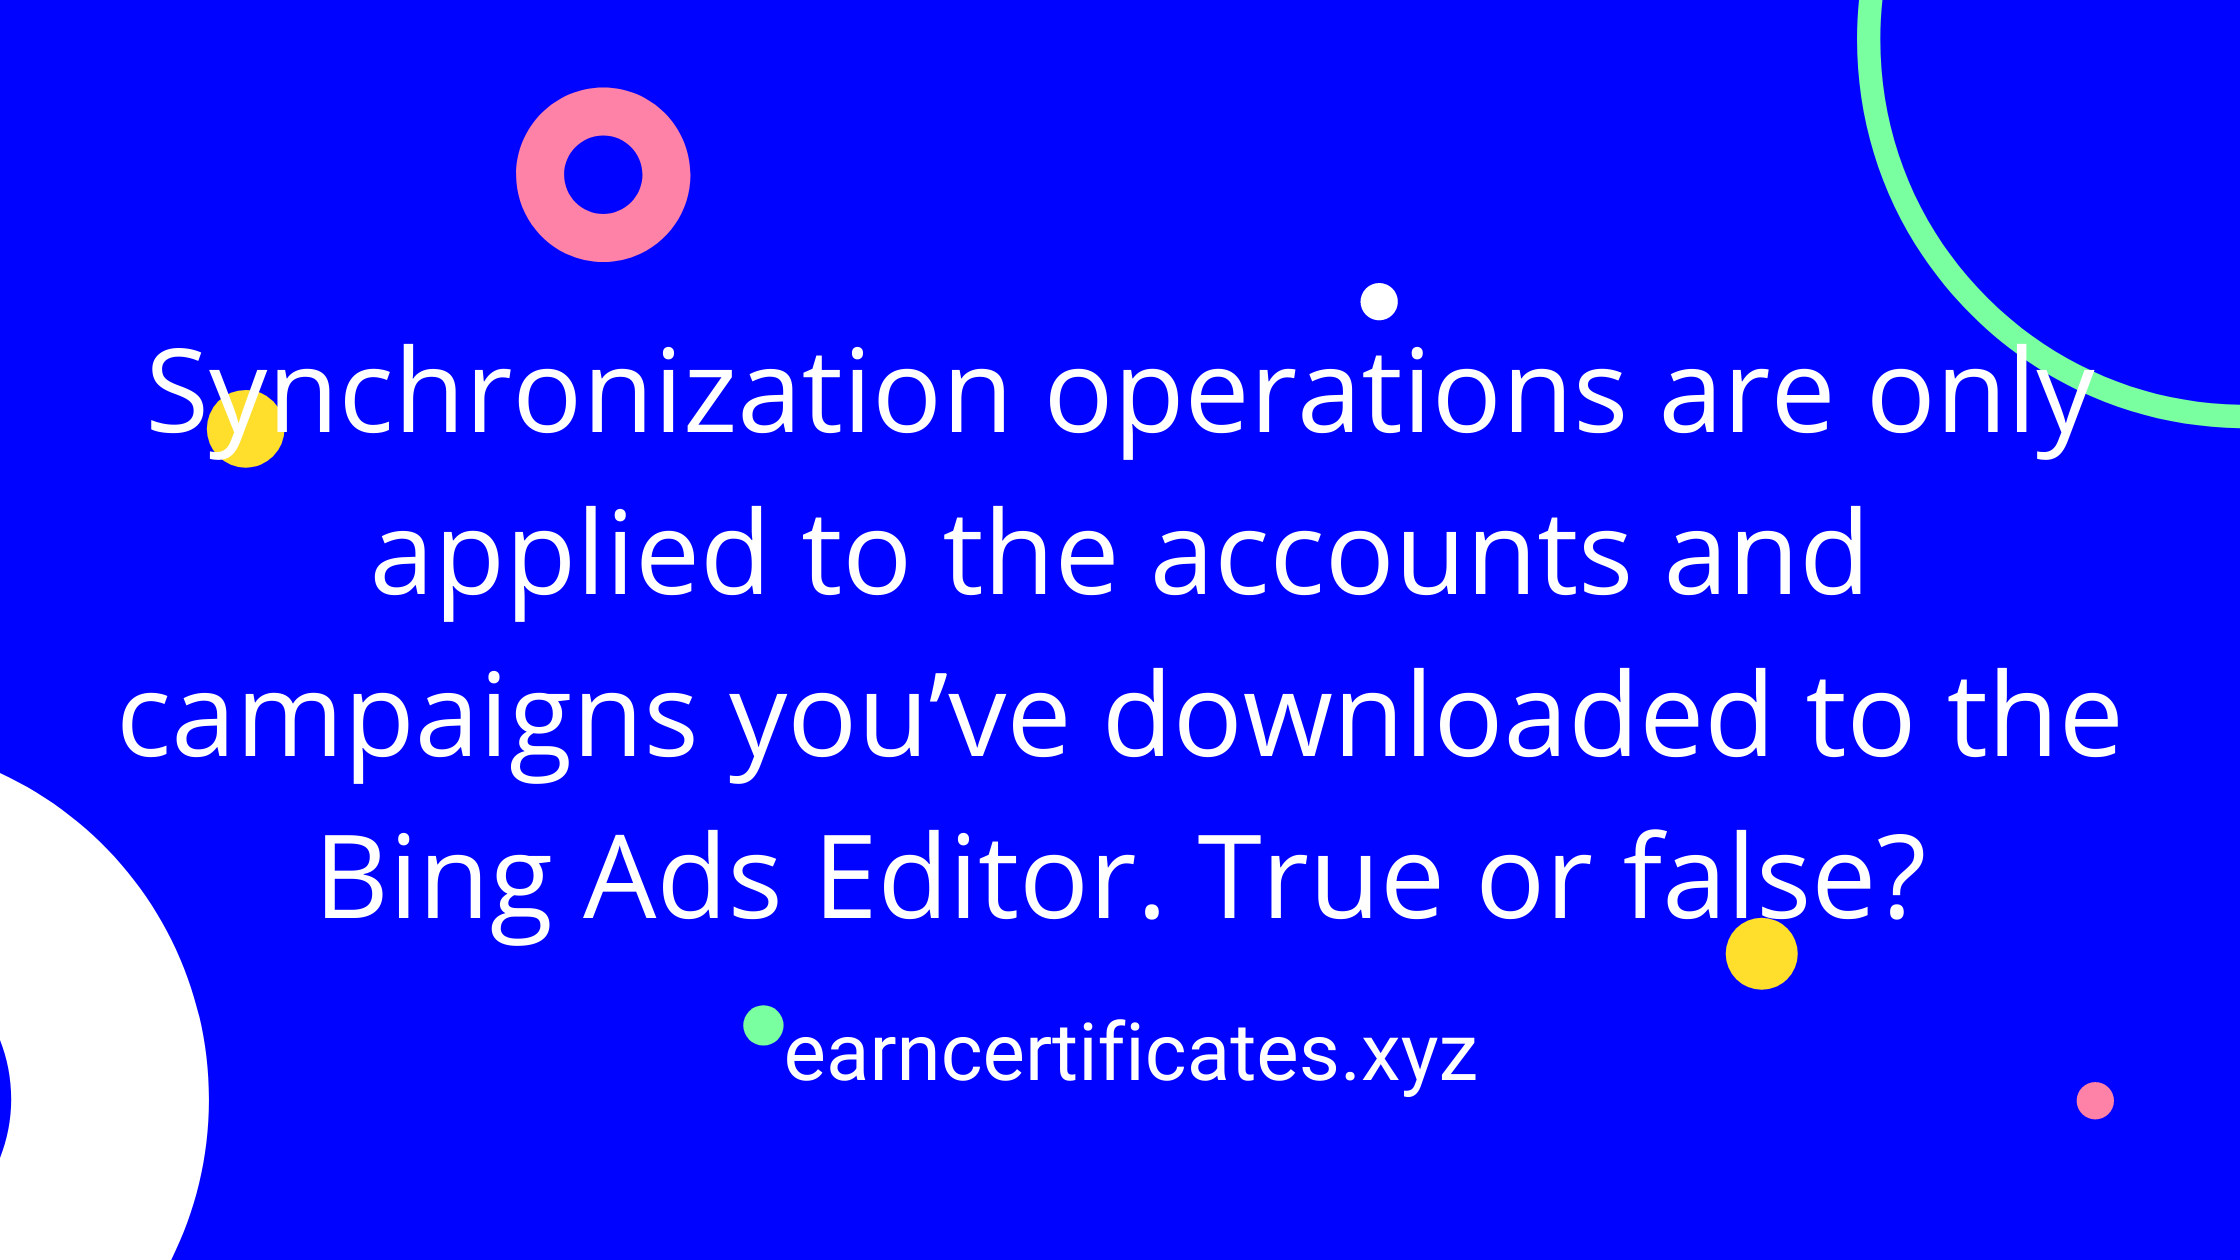 Synchronization operations are only applied to the accounts and campaigns you've downloaded to the Bing Ads Editor. True or false?